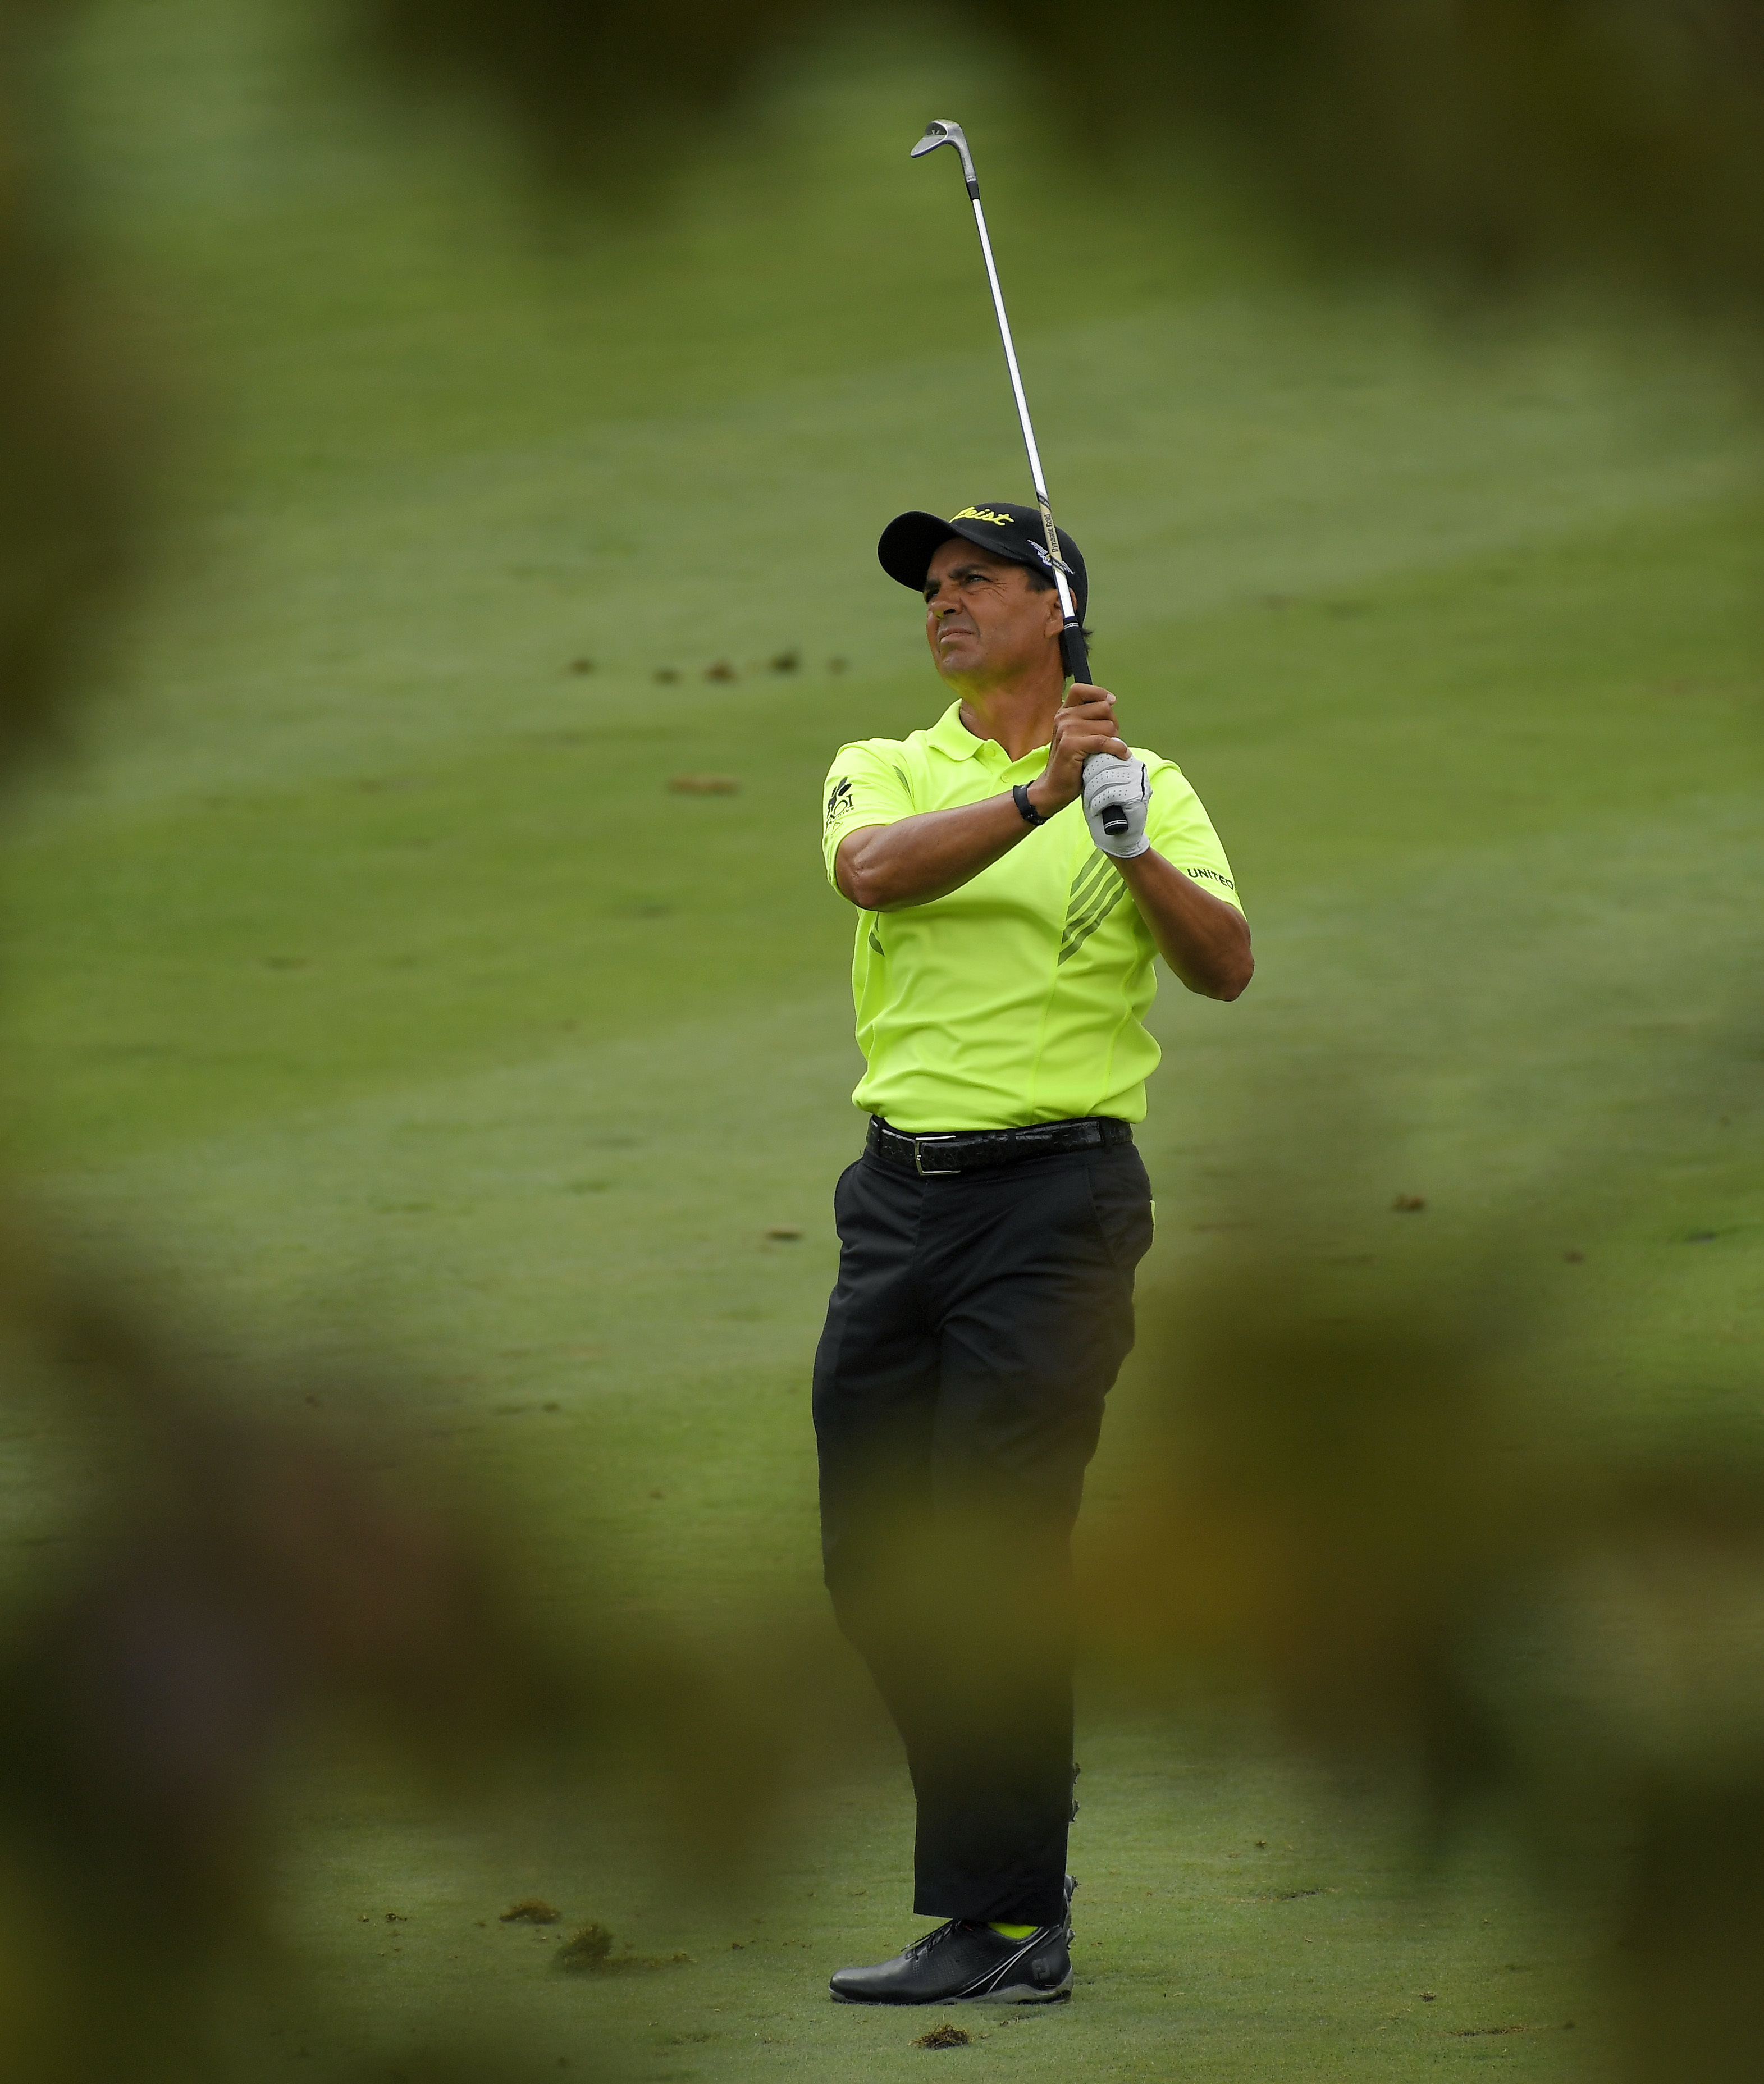 Tom Pernice Jr. is seen through trees as hits from the fairway on the second hole during the final round of the PowerShares QQQ Championship golf tournament, Sunday, Oct. 30, 2016, at Sherwood Country Club in Thousand Oaks, Calif. (AP Photo/Mark J. Terril